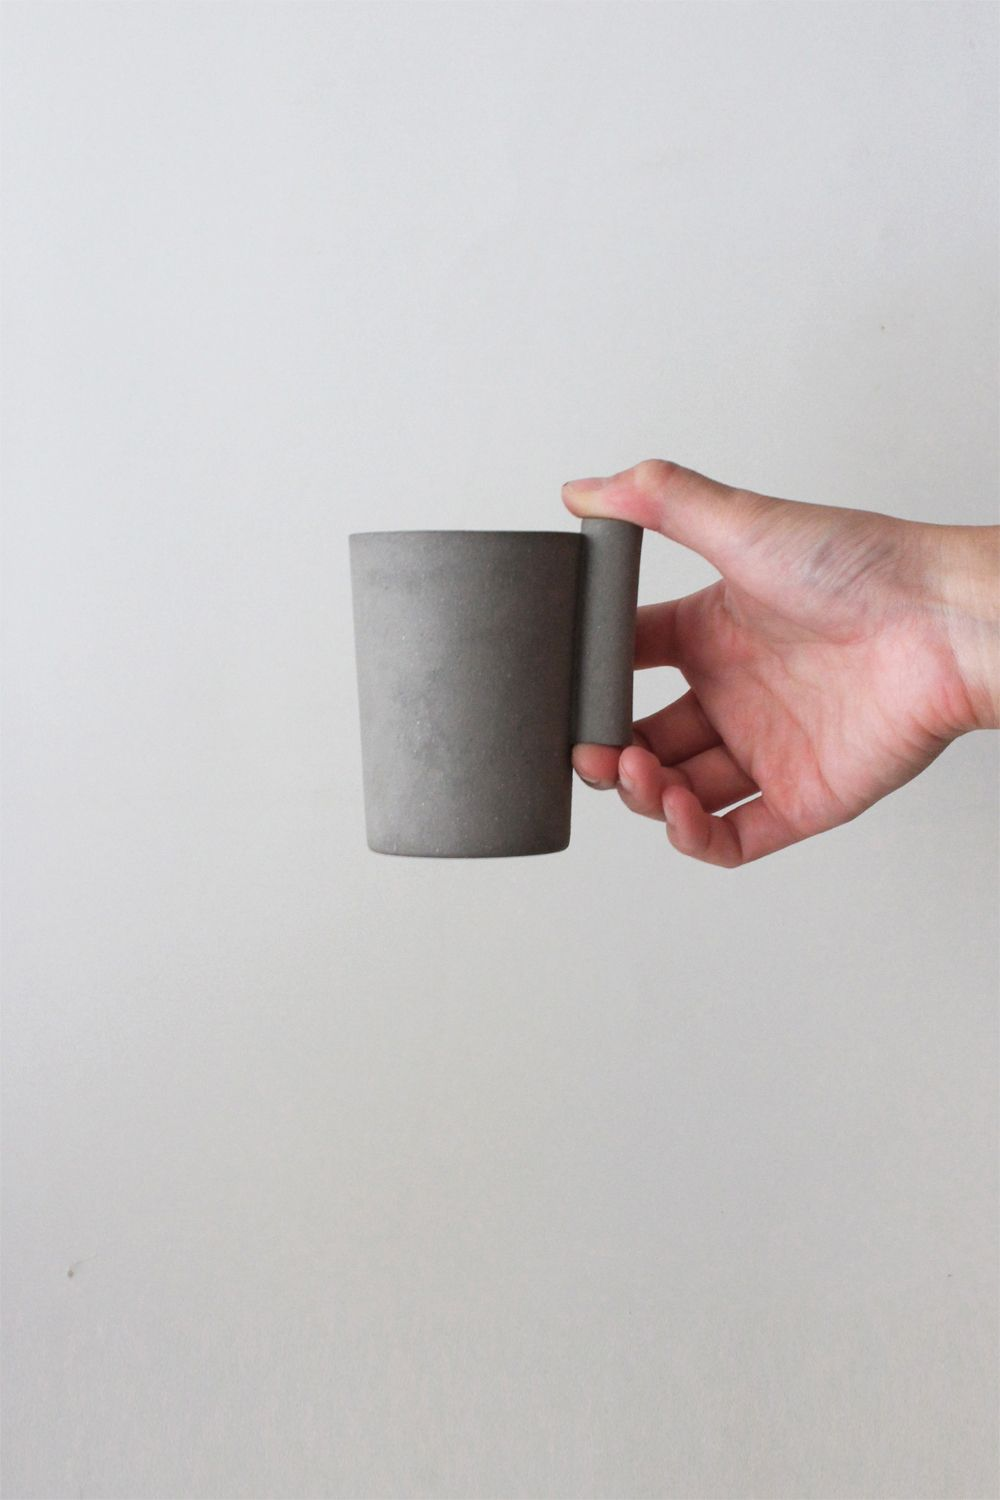 Designer Akiko Oue's Kop cup handle resembles handles of a different sort, door handles.